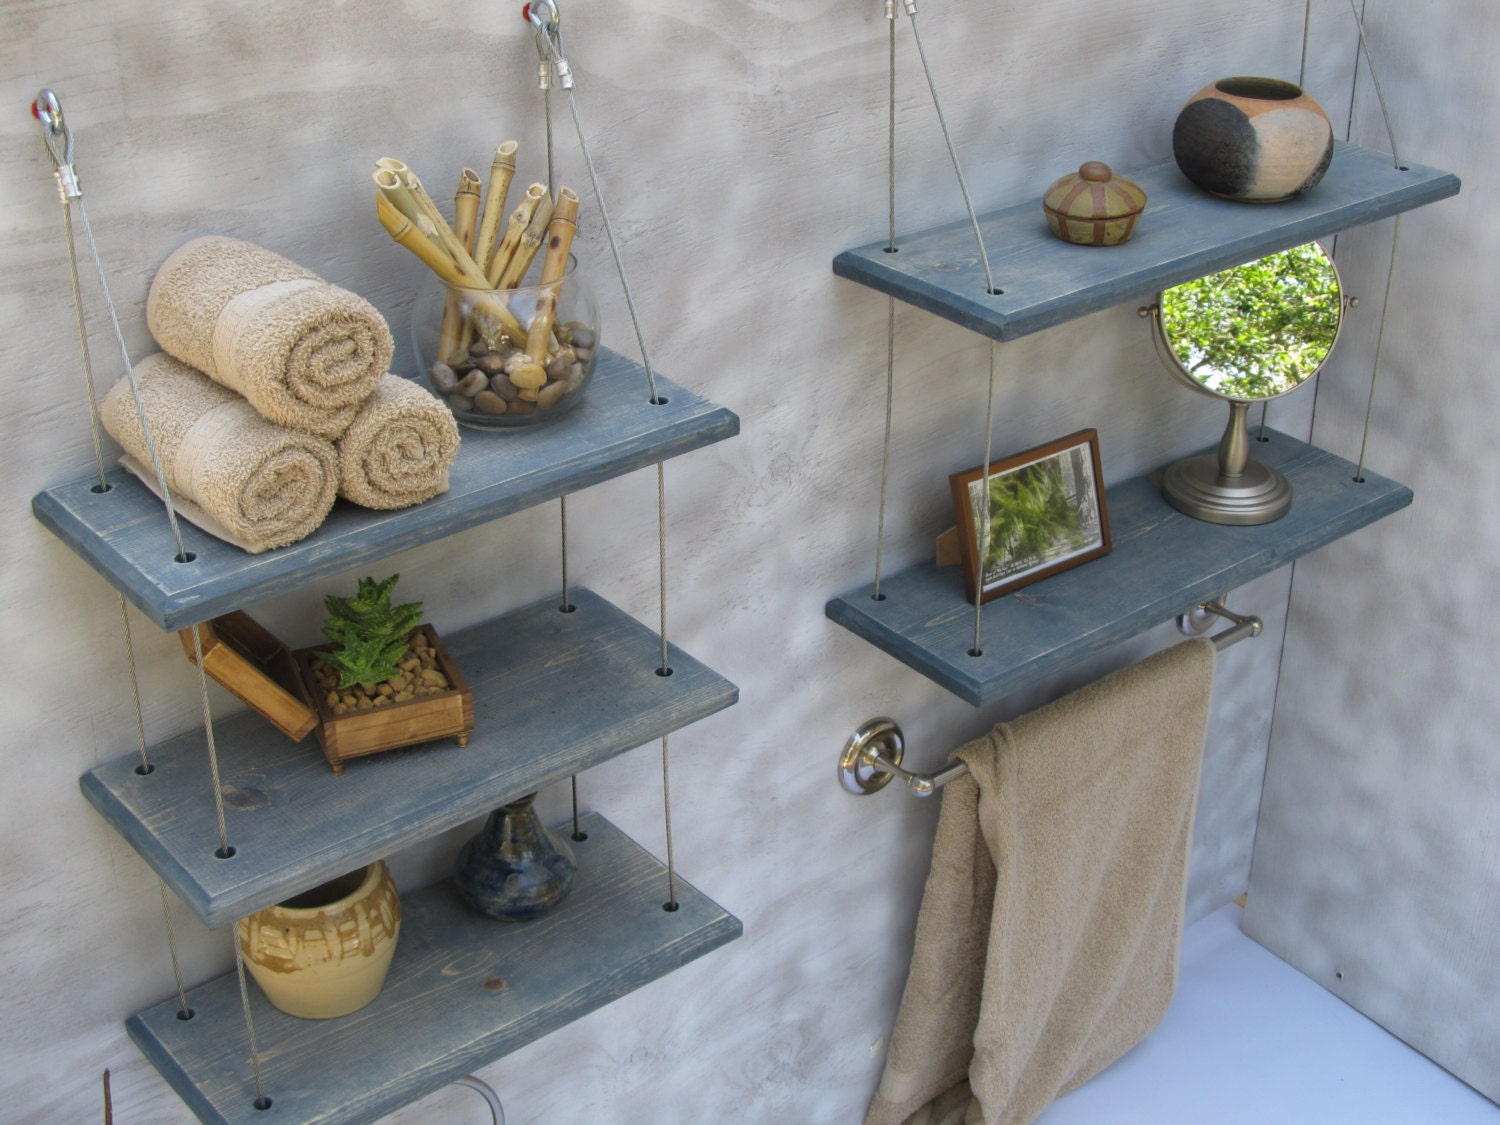 Bathroom shelves floating shelves industrial shelves for Bathroom shelves design